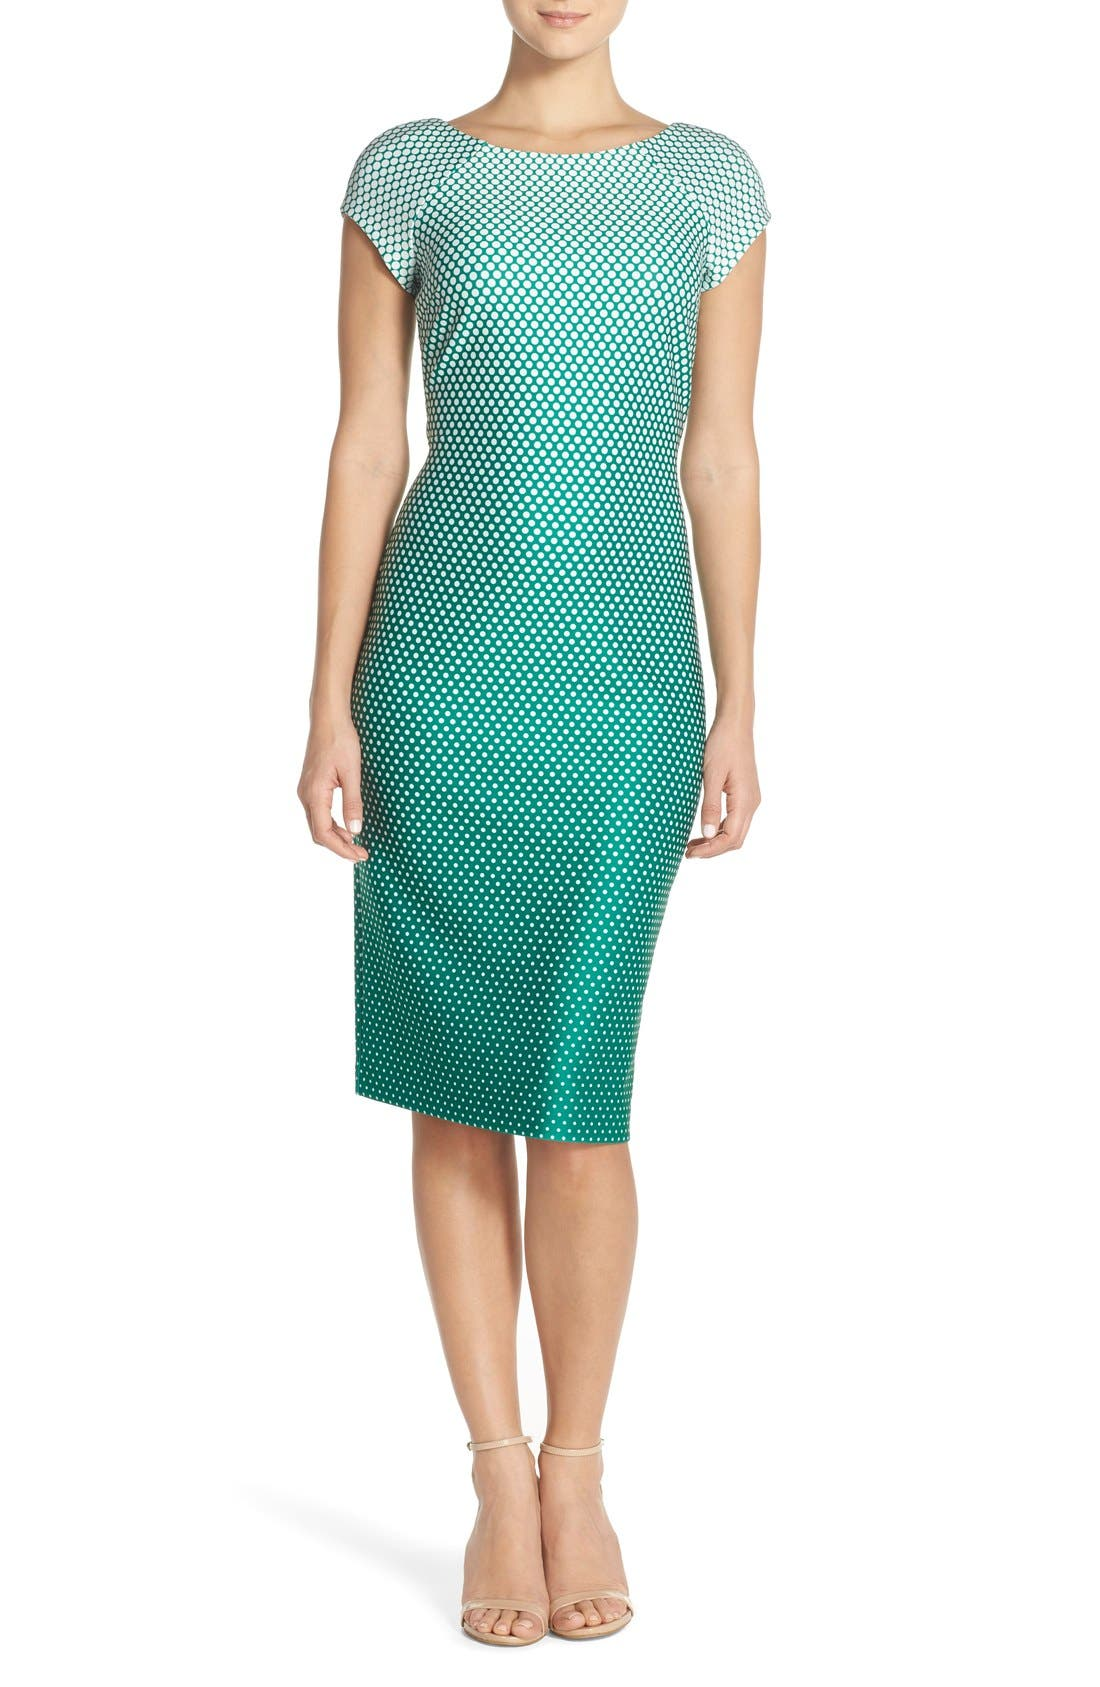 Alternate Image 1 Selected - ECI Ombré Polka Dot Scuba Midi Sheath Dress